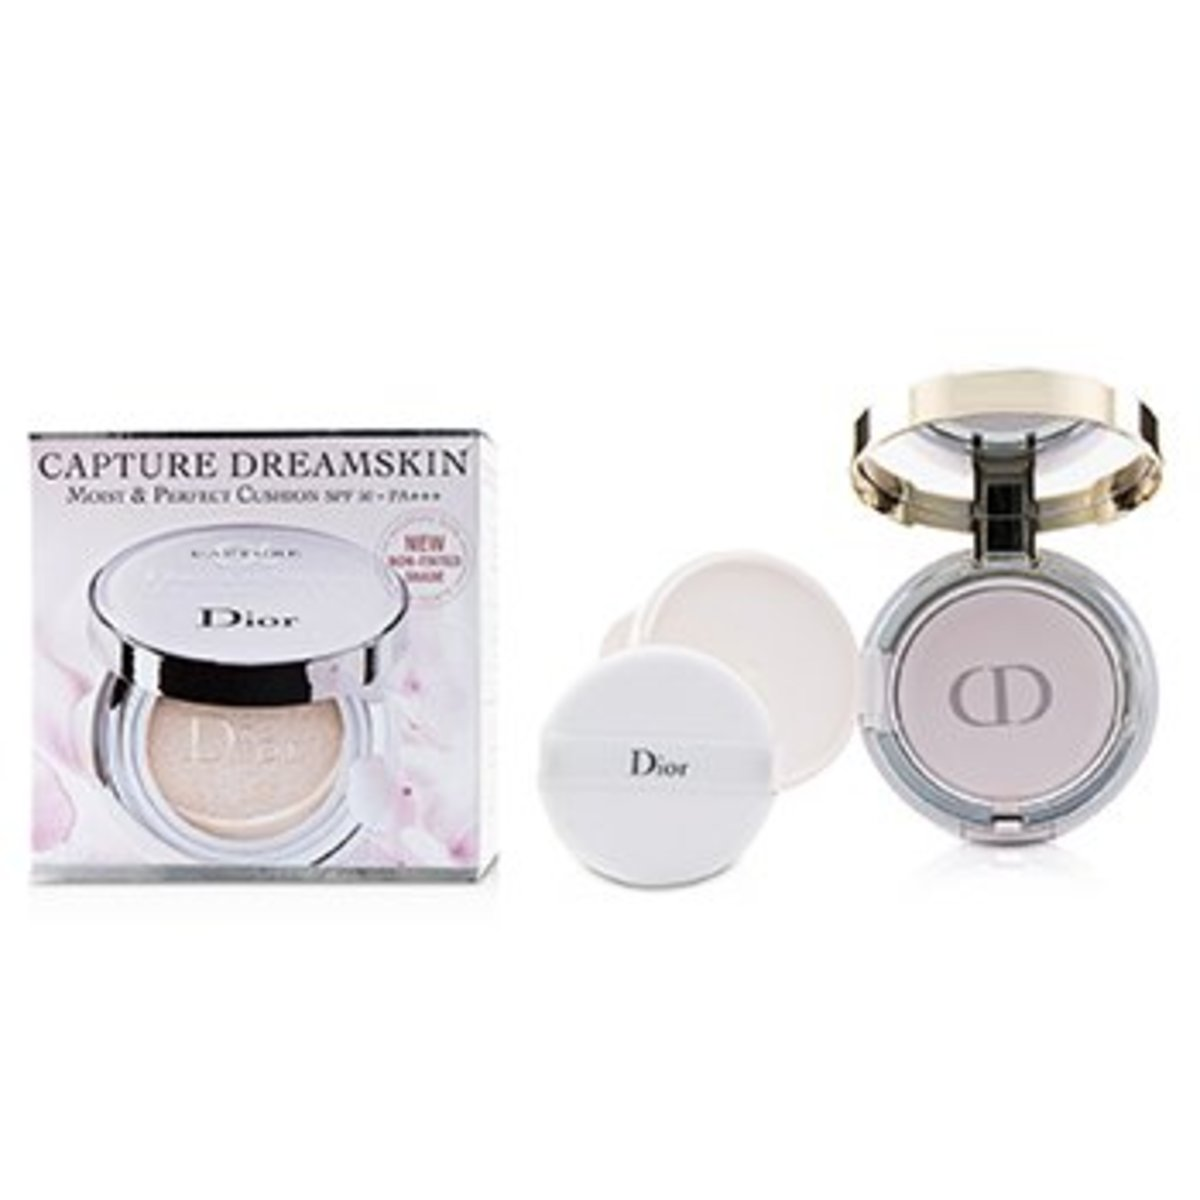 Capture Dreamskin Moist & Perfect Cushion SPF 50 With Extra Refill - # 000  -[Parallel Import Produc